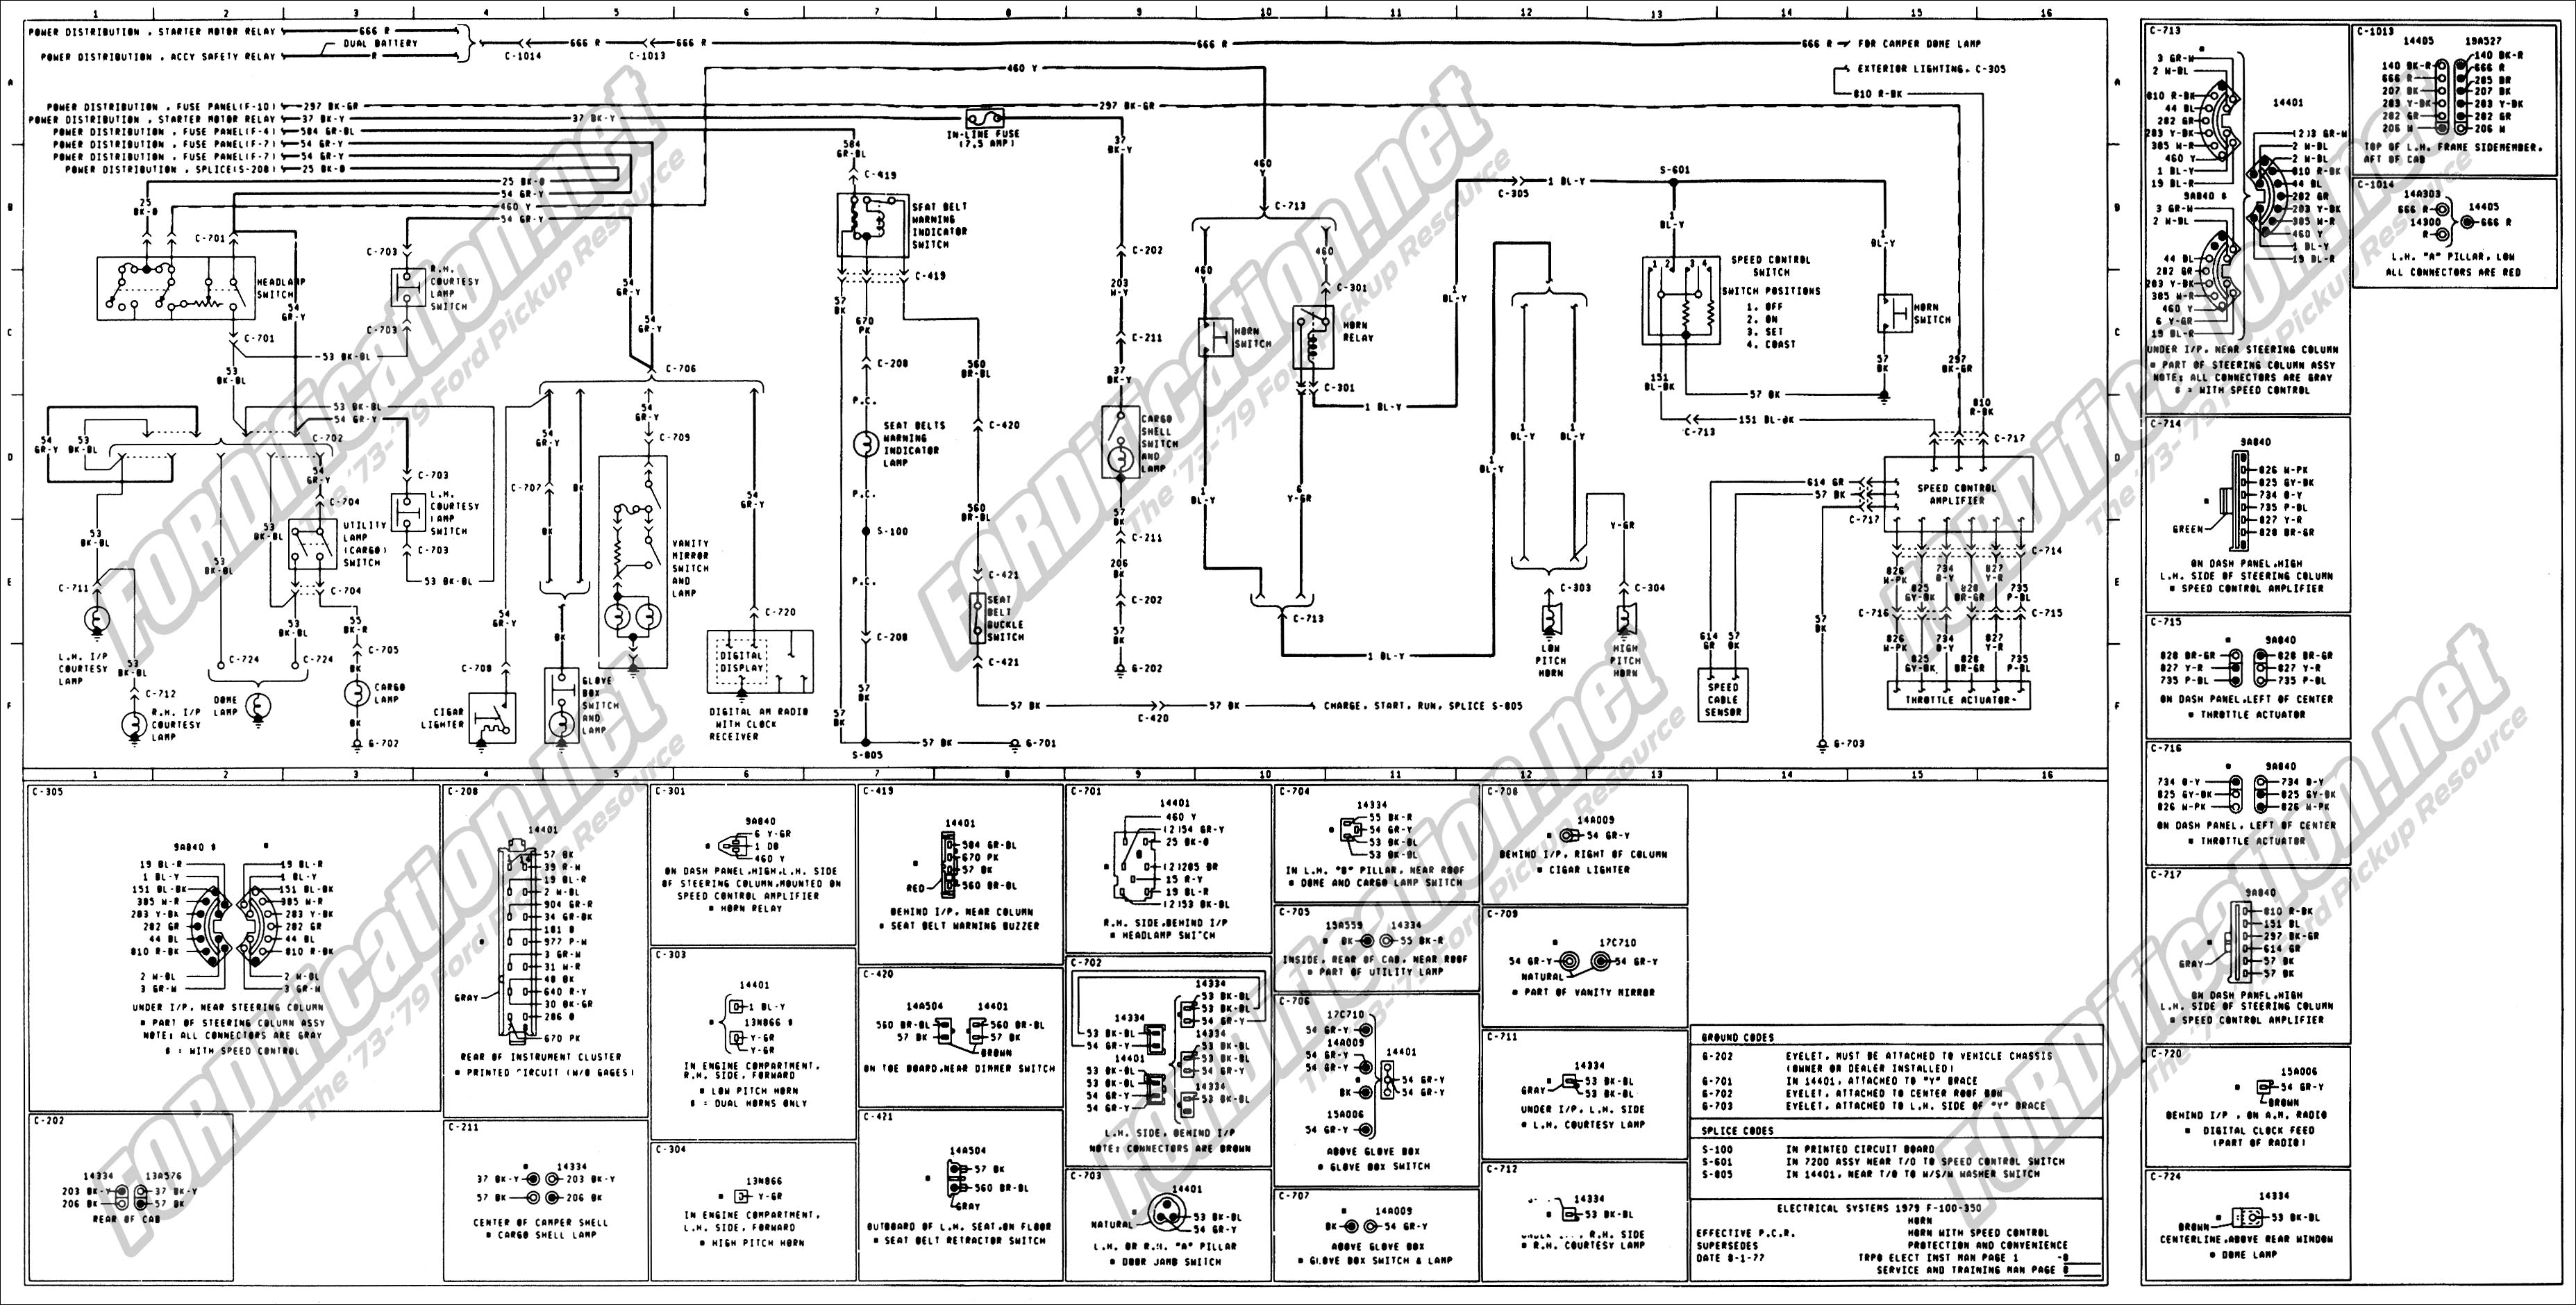 1978 Fairmont Wiring Diagram Schematics Diagrams Mercury Zephyr 78 Ford F100 Detailed Rh Lelandlutheran Com 1976